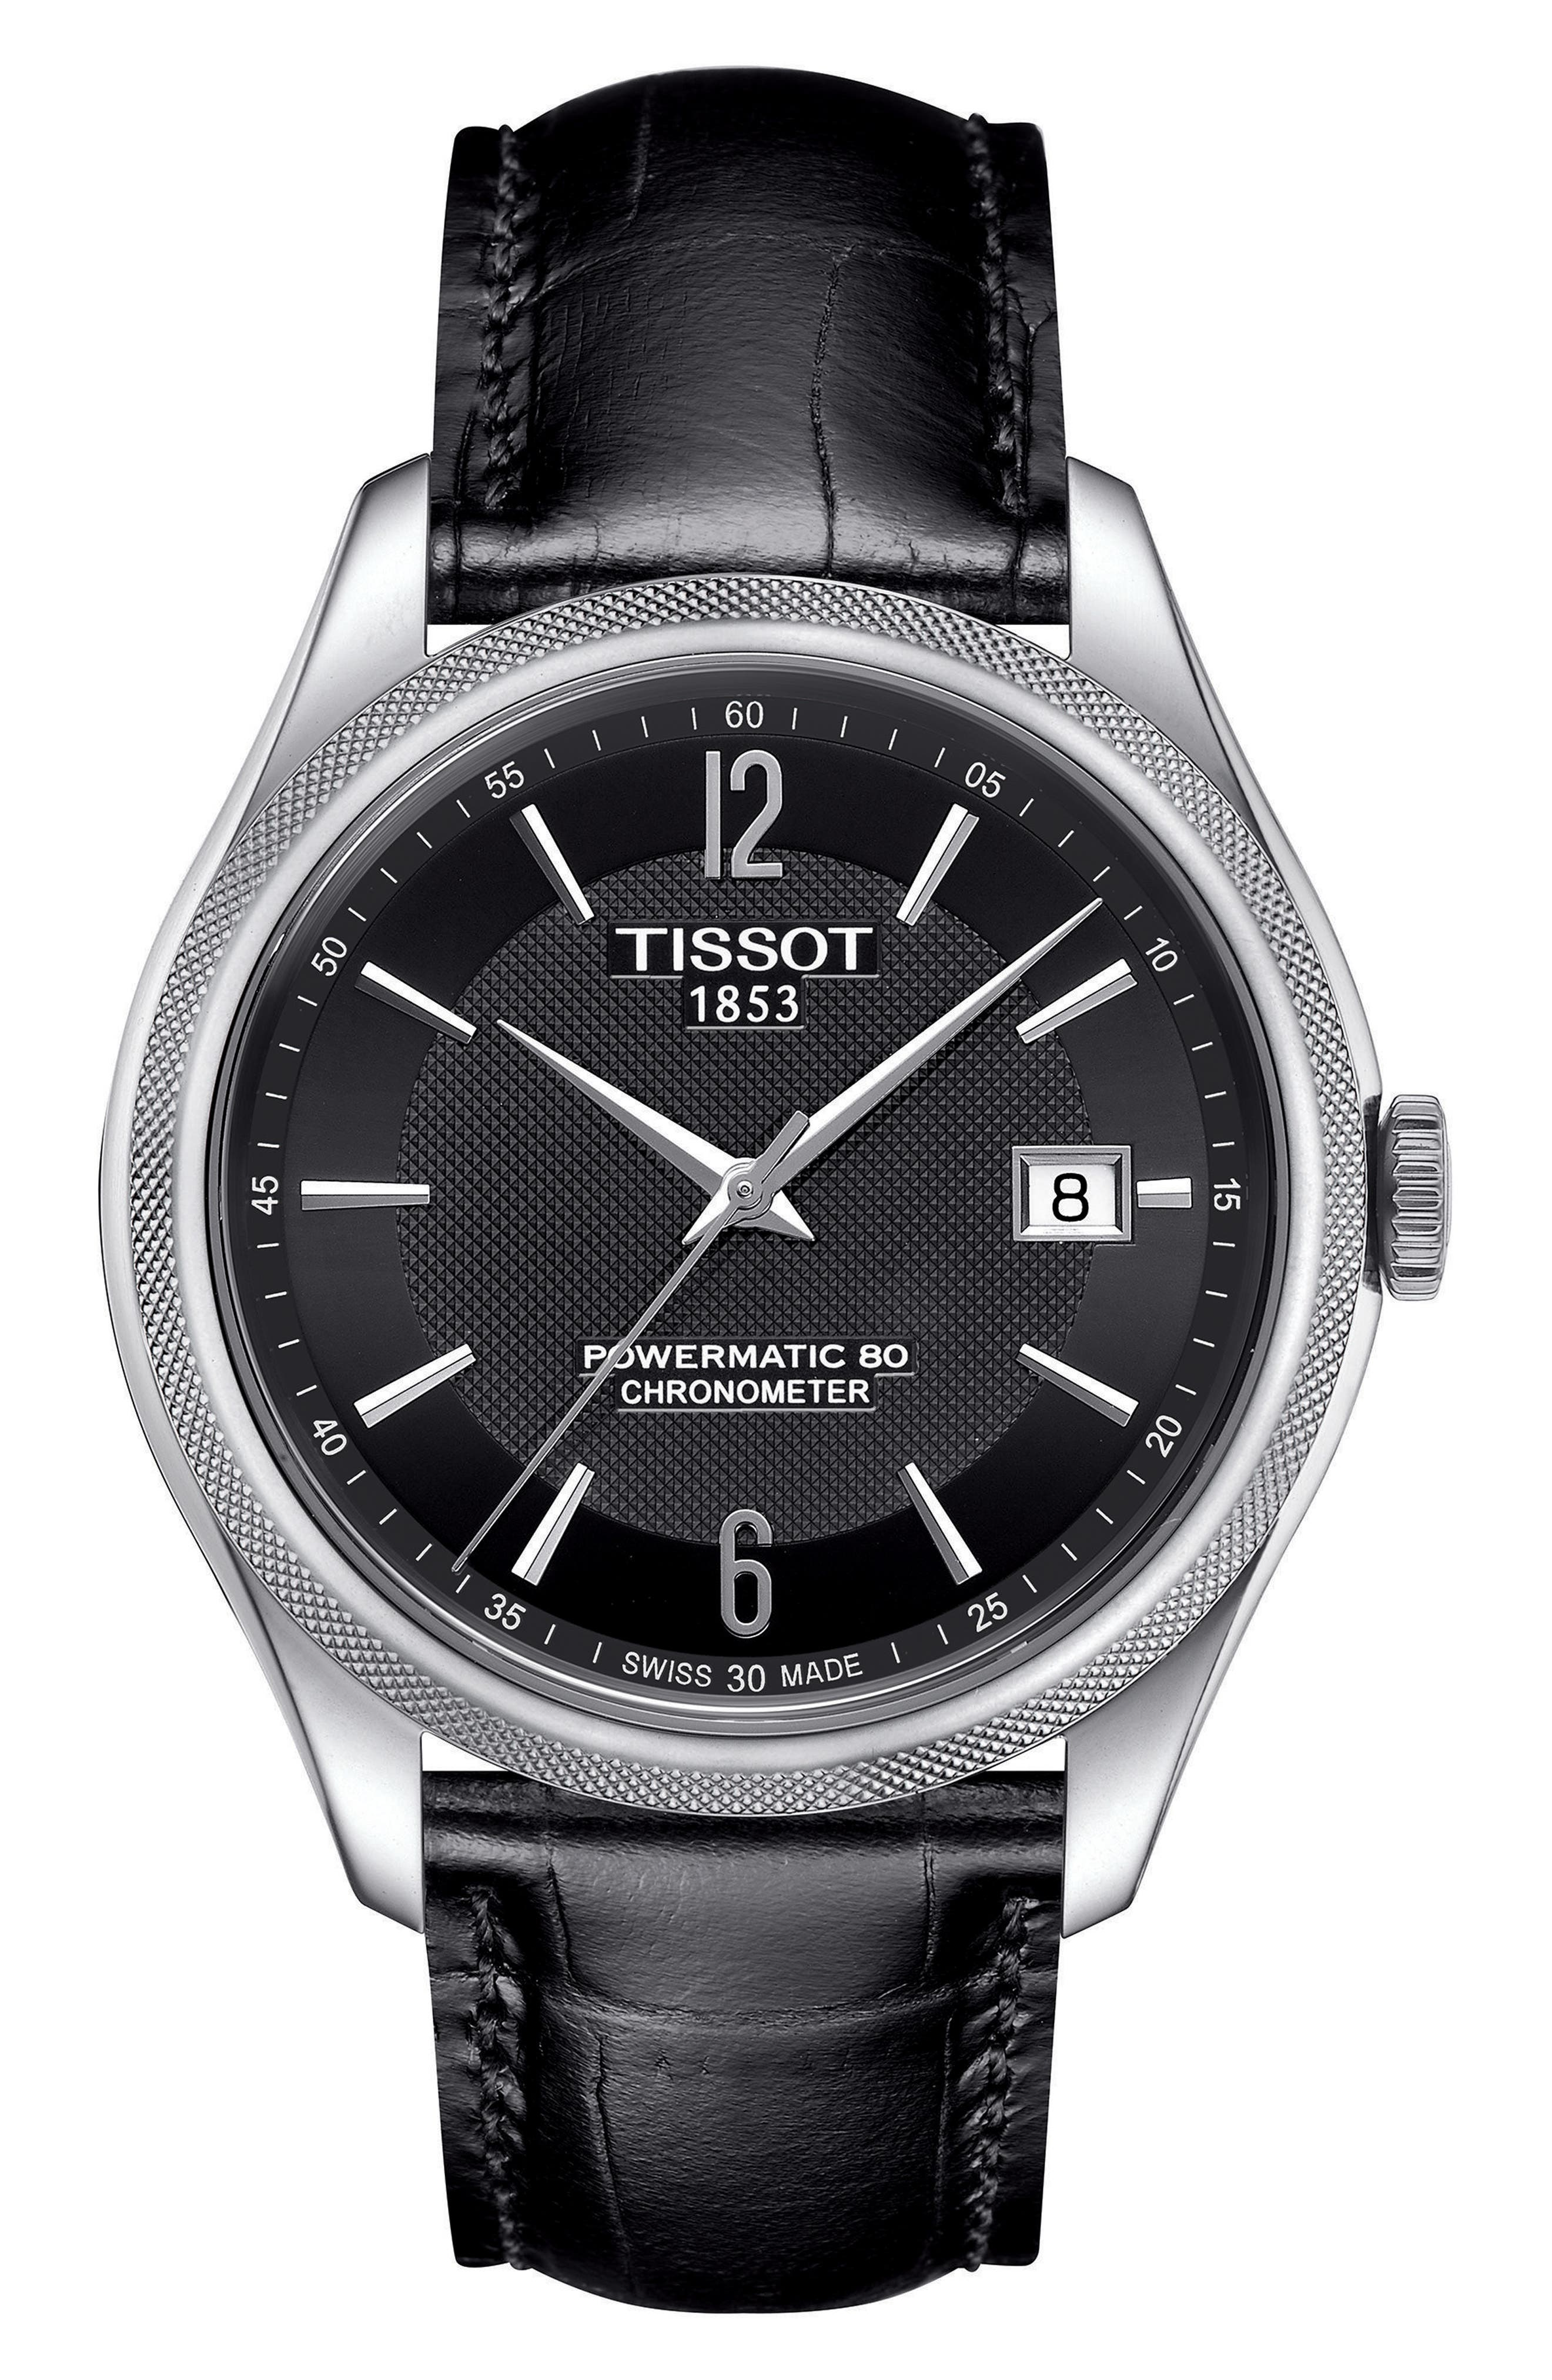 Tissot Ballade Powermatic 80 Chronometer Leather Strap Watch, 39mm